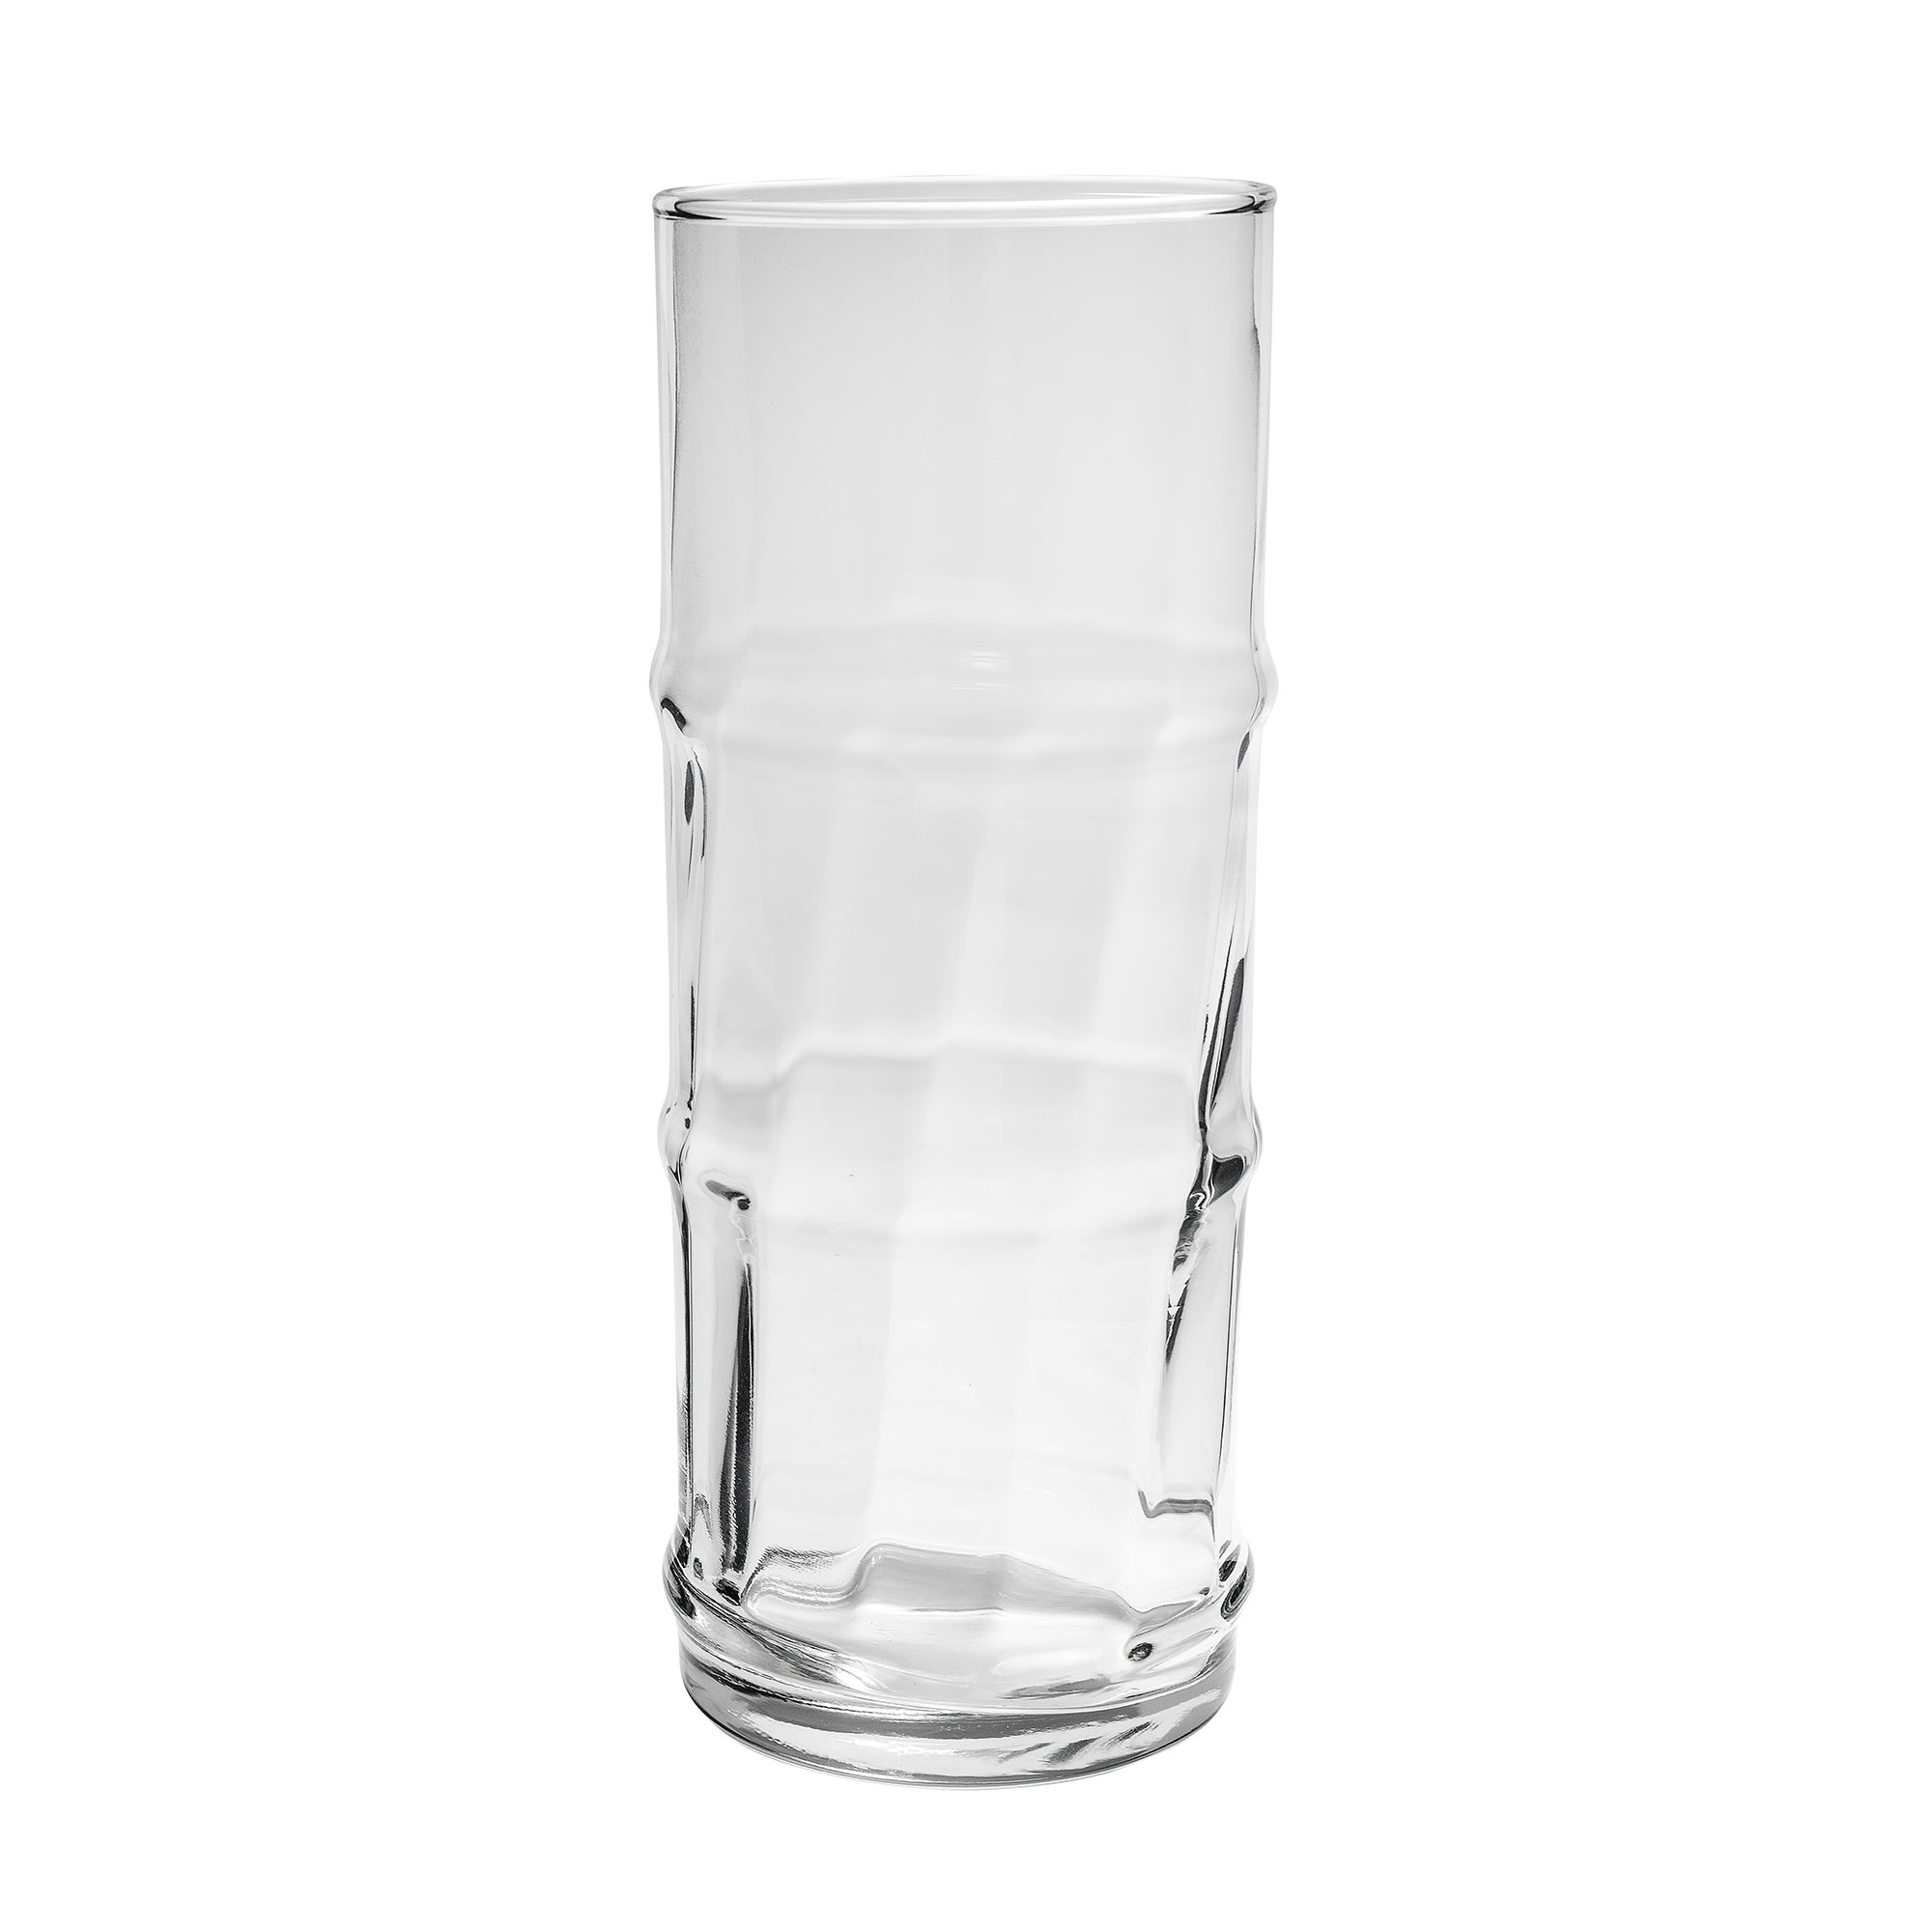 Libbey 32802 16 oz Hurricane Cooler Glass - Safedge Rim Guarantee